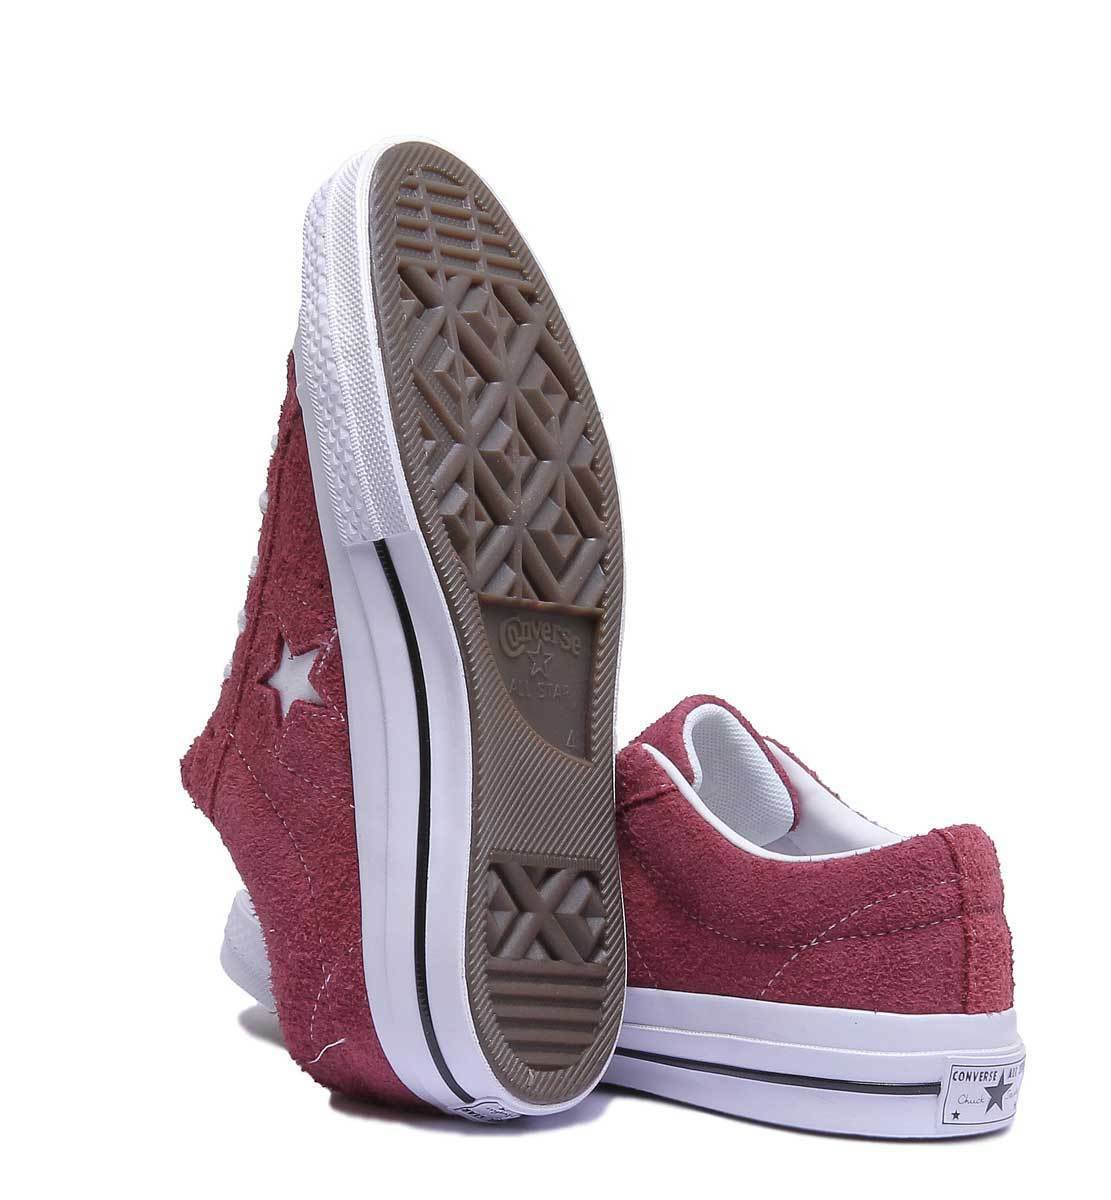 Converse One Trainers Star Premium Suede Women Suede Leather Maroon Trainers One 3 - 6.5 8d04d6